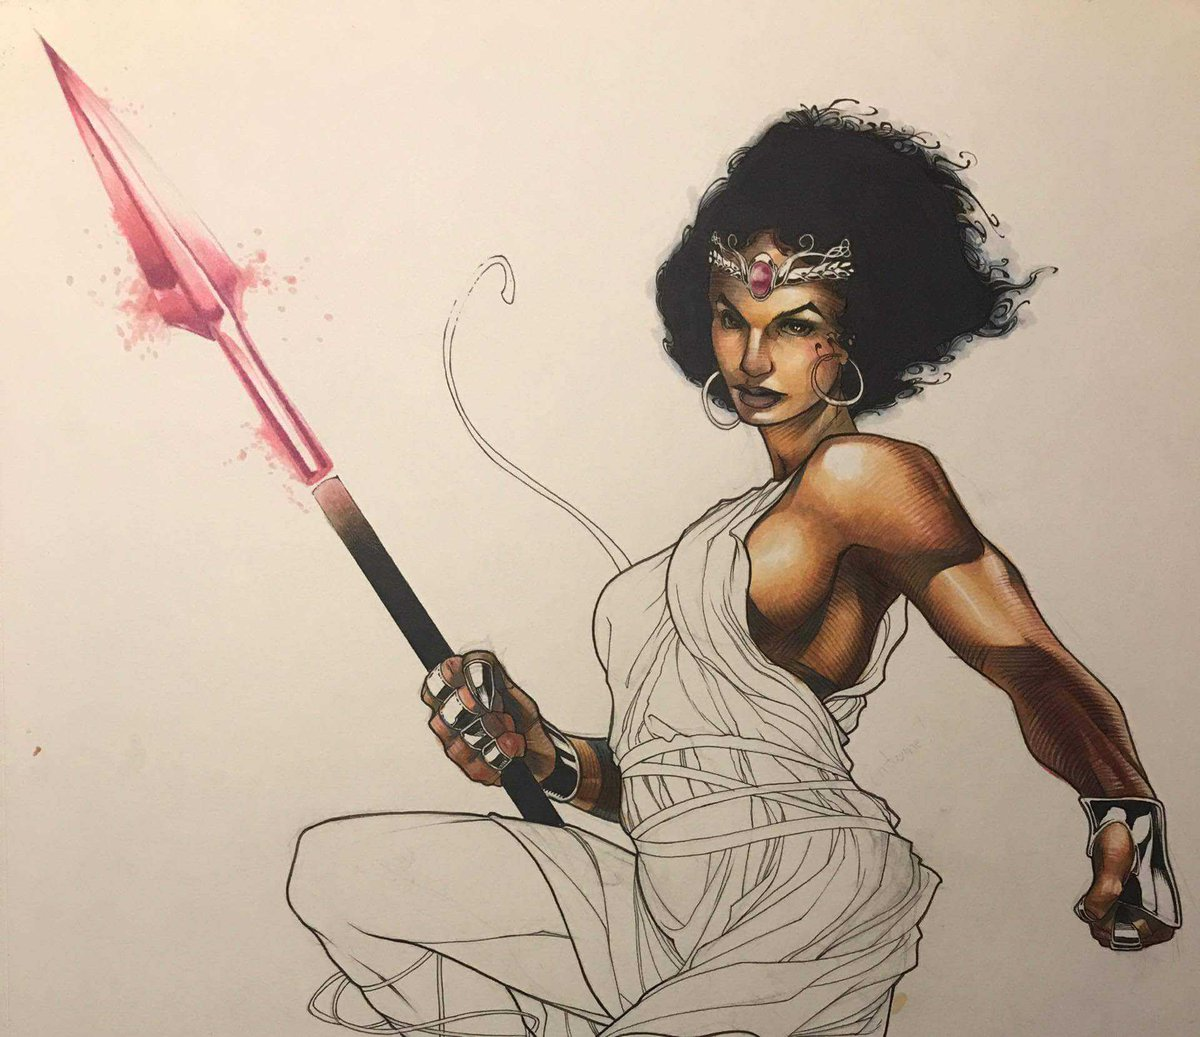 Because I&#39;m too excited about how good this is looking. Ladies and gentlemen... the art of @kinggoji   #Commission #art #Copic #Queen #afro <br>http://pic.twitter.com/1HWpfWO3bv